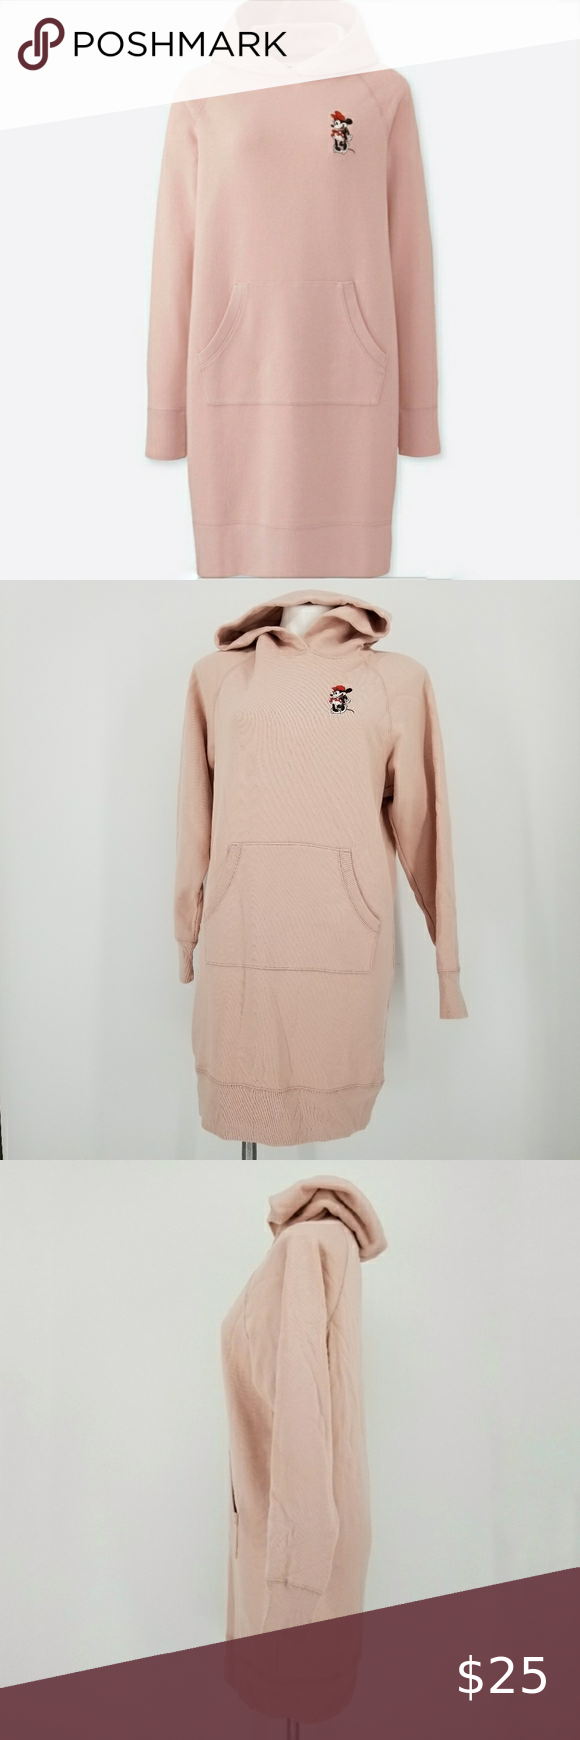 Nwt Uniqlo Disney Mikey Stands Hoodie Dress Hoodie Dress Uniqlo Dresses Clothes Design [ 1740 x 580 Pixel ]